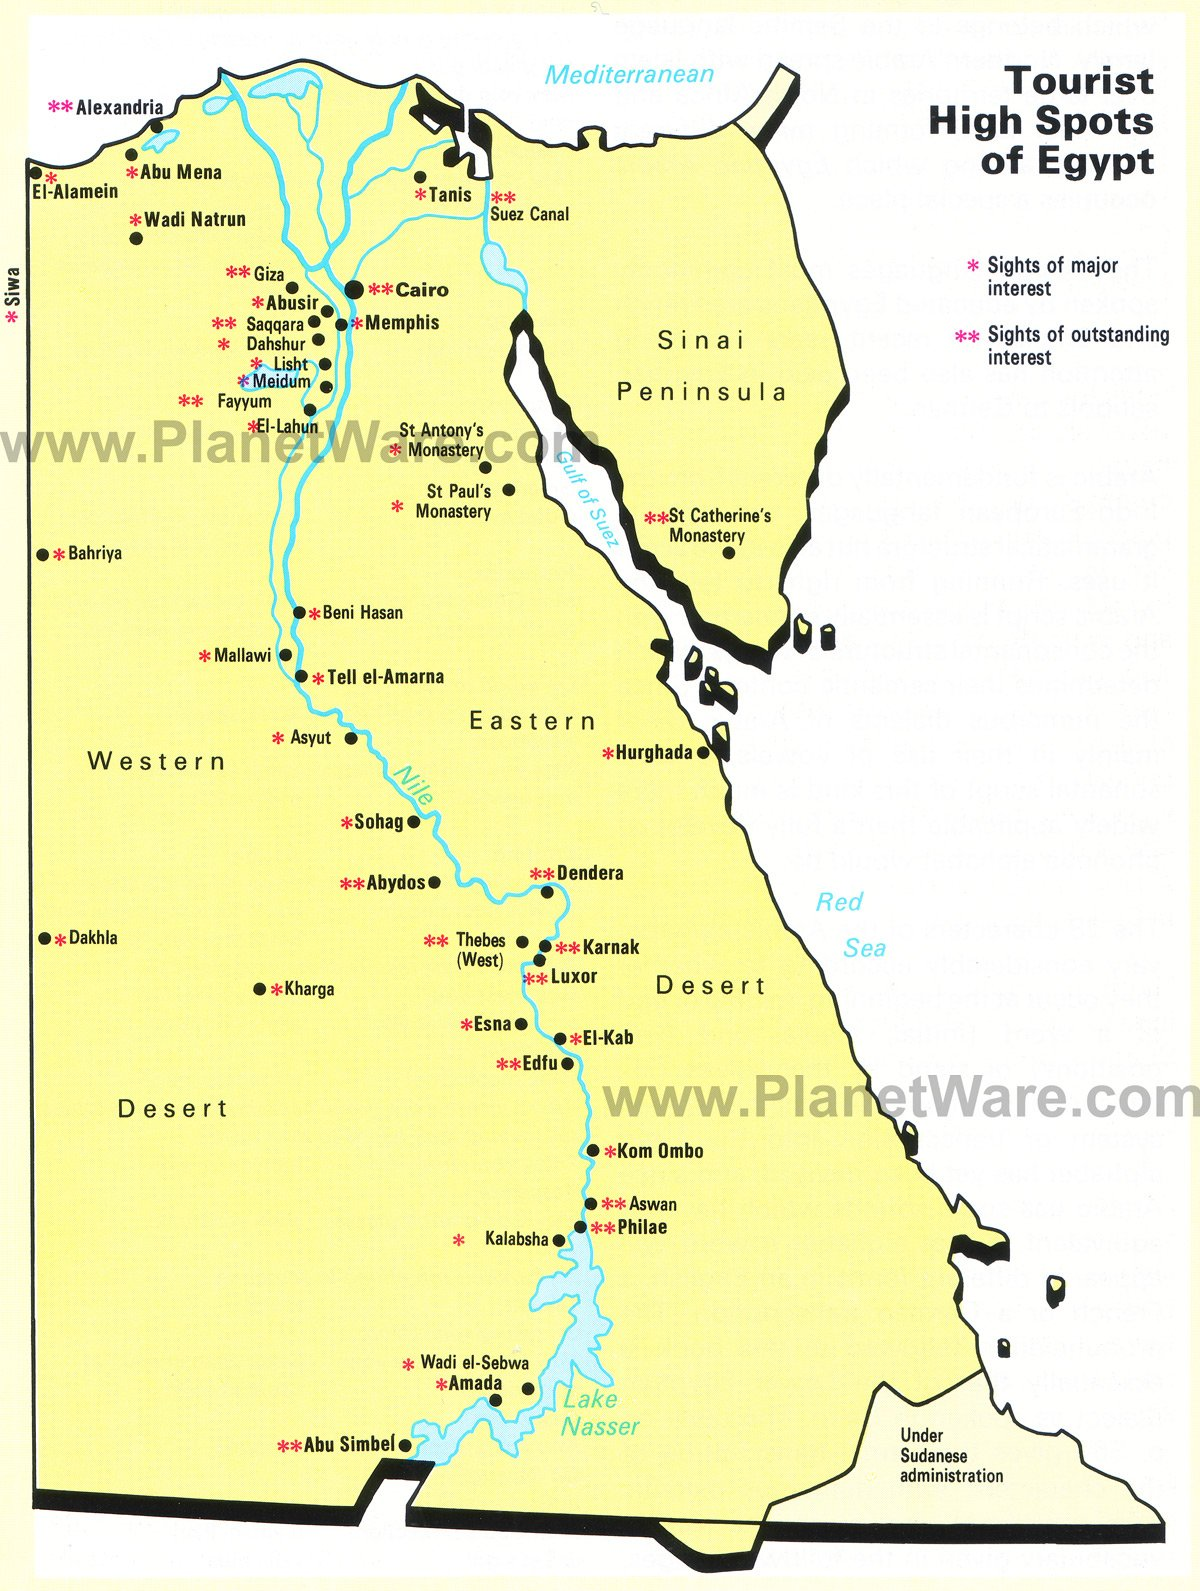 Map of Populat Tourist Spots in Egypt – Egypt Tourist Attractions Map